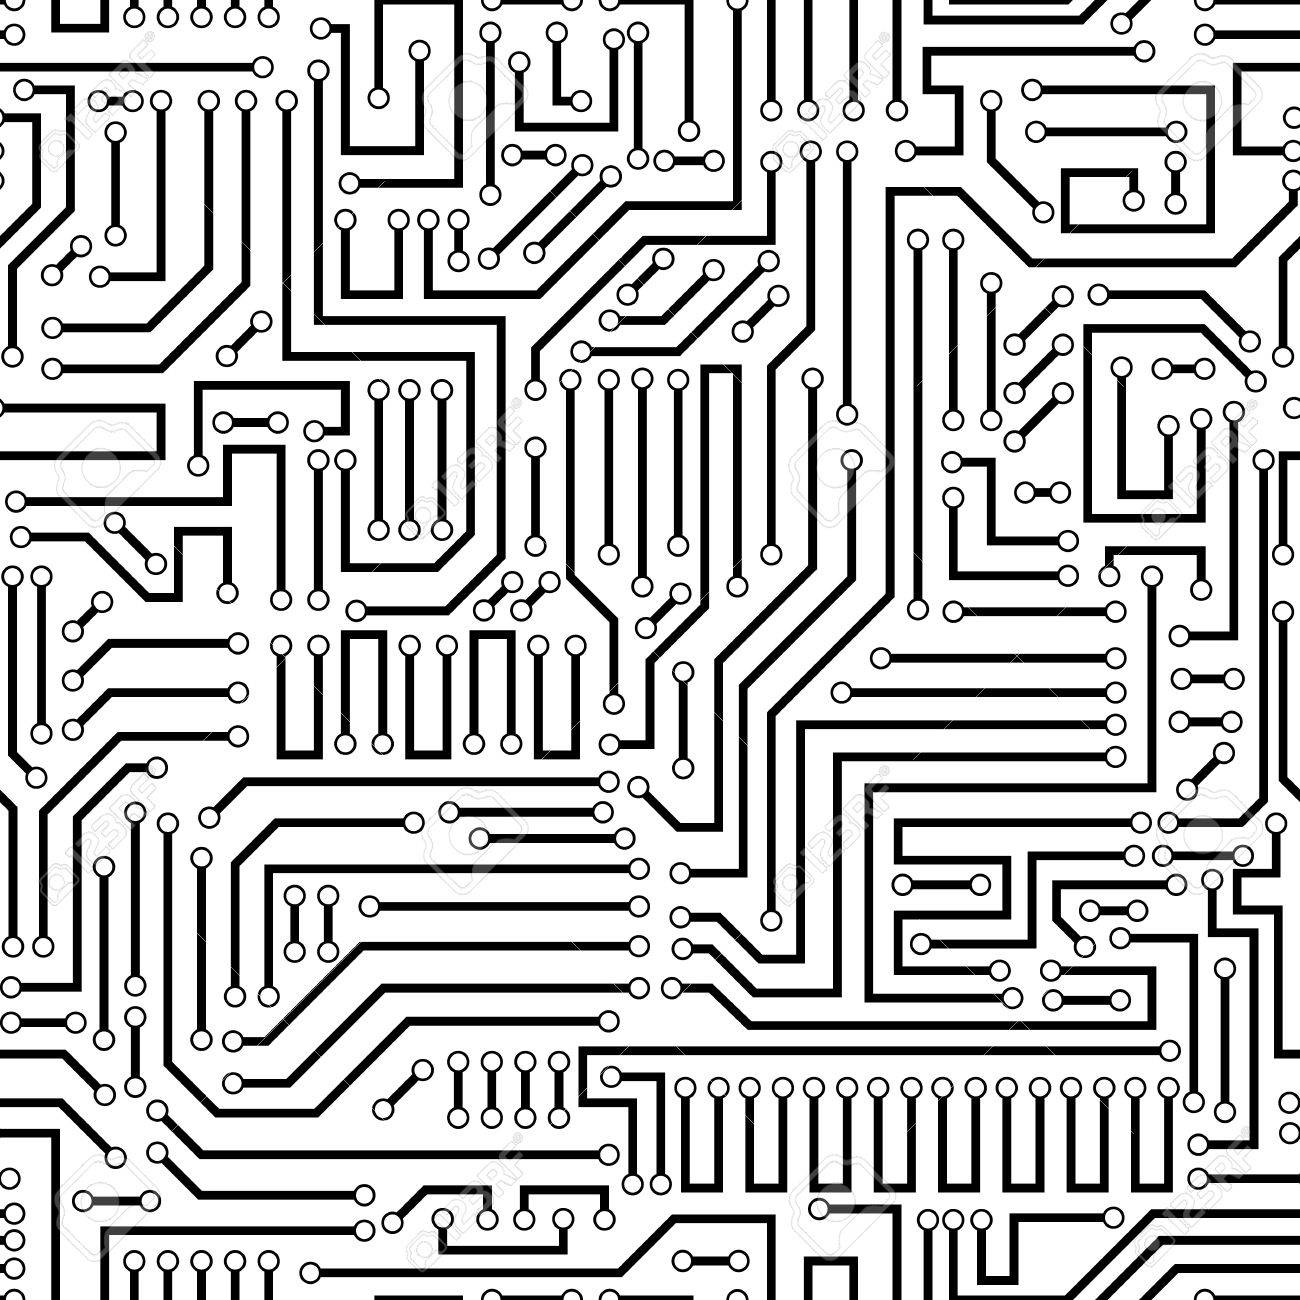 Printed circuit texture background. Seamless black and white electronic plate pattern vector. Circuit board vector illustration. Futuristic background. Electrical scheme. Technology seamless background with pattern in swatches - 38992828